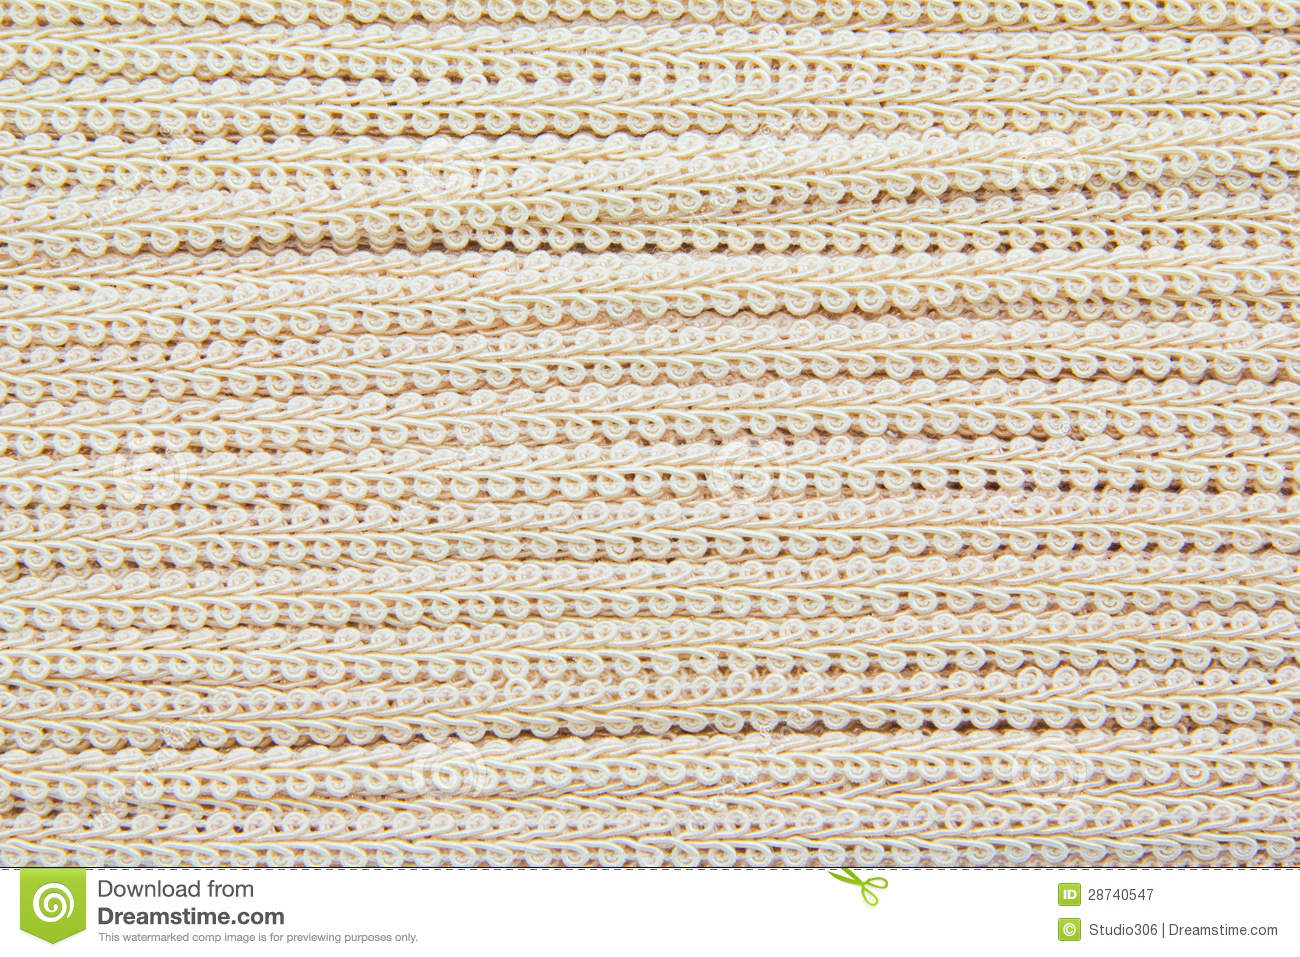 Cream lace fabric texture royalty free stock photography image - Cream Lace Fabric Texture Royalty Free Stock Photography